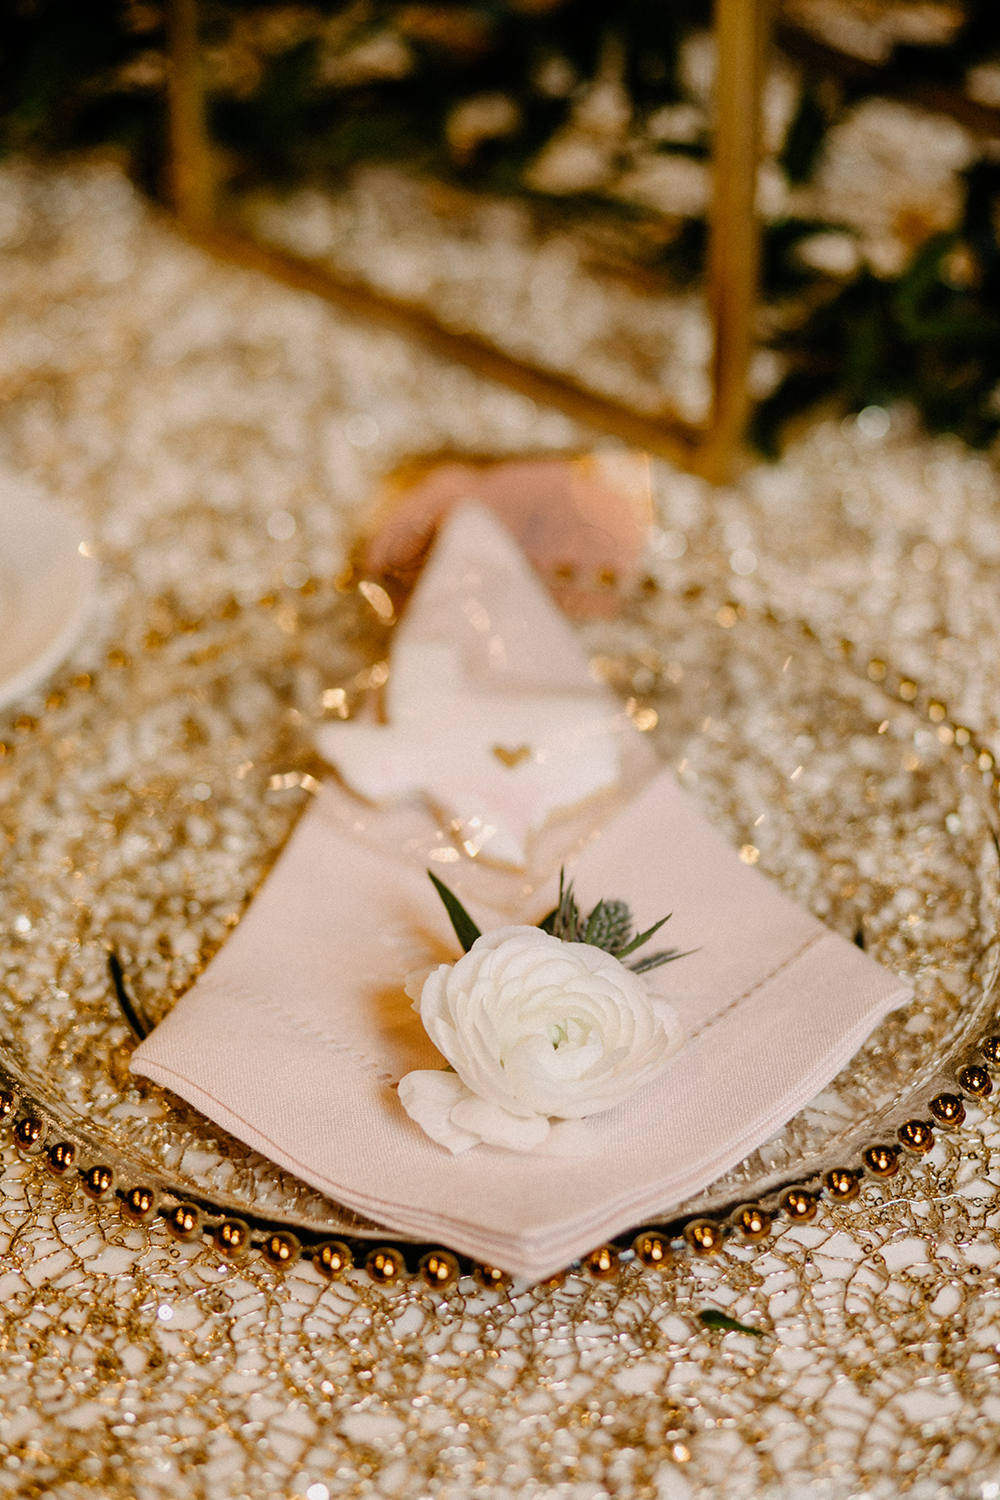 reception decor - table settings - table accents